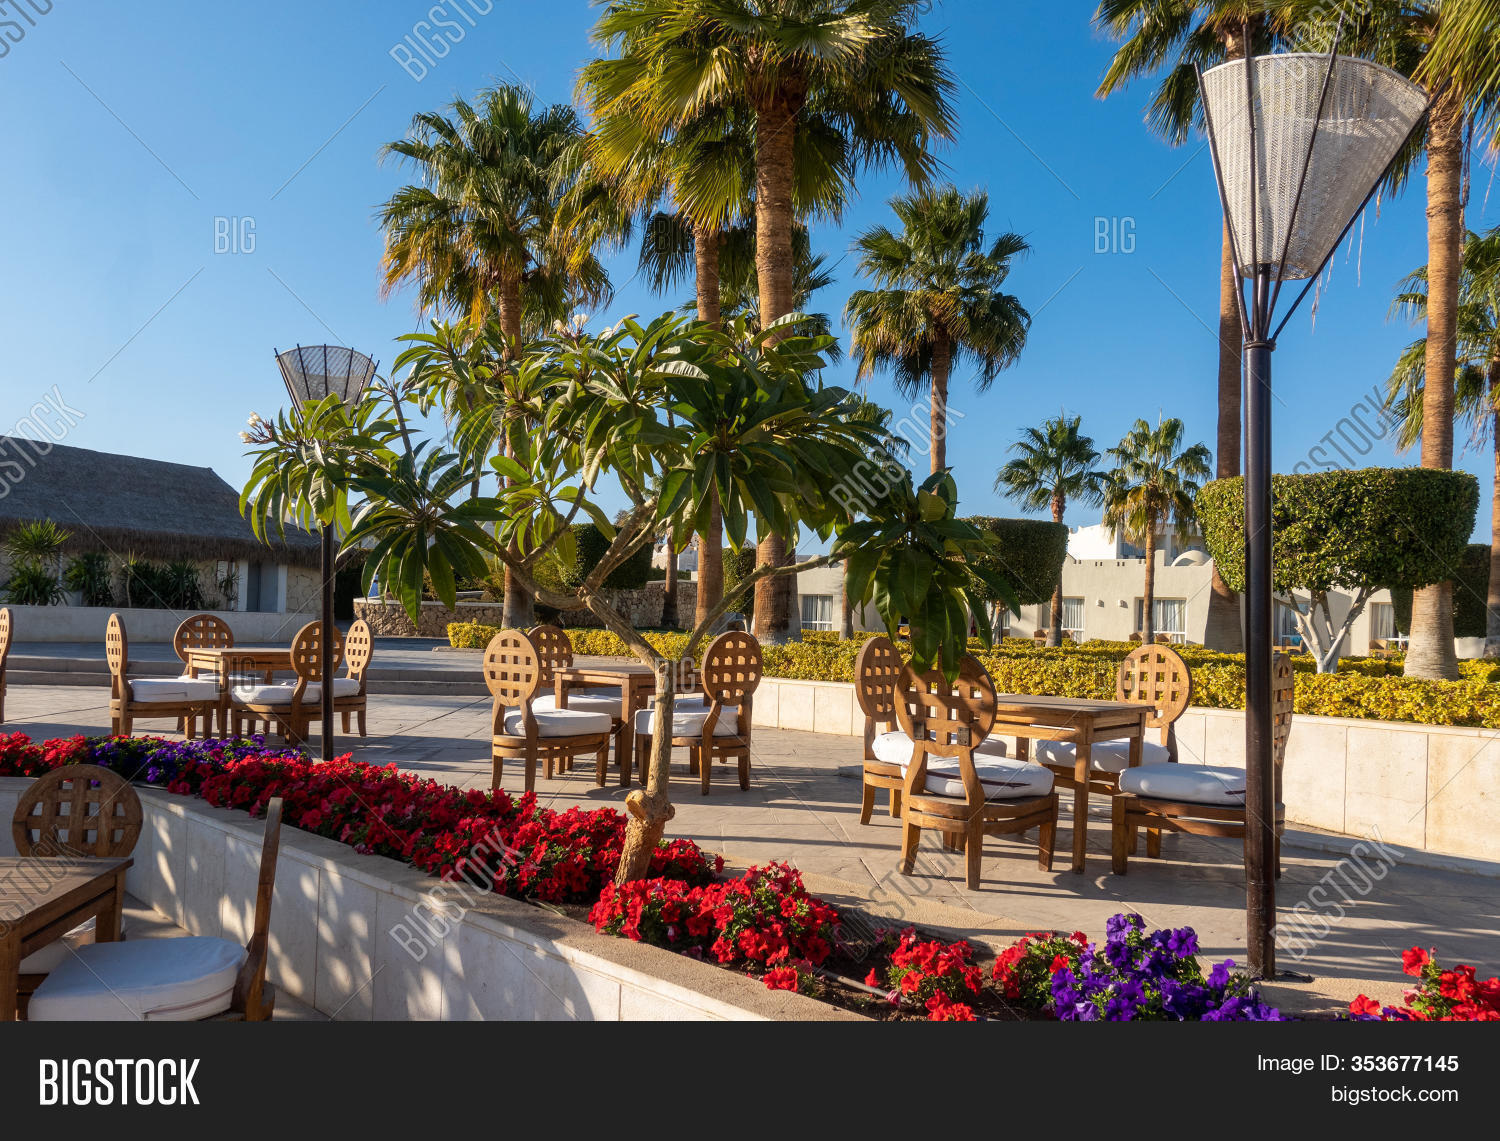 Outdoor Street Cafe Image Photo Free Trial Bigstock